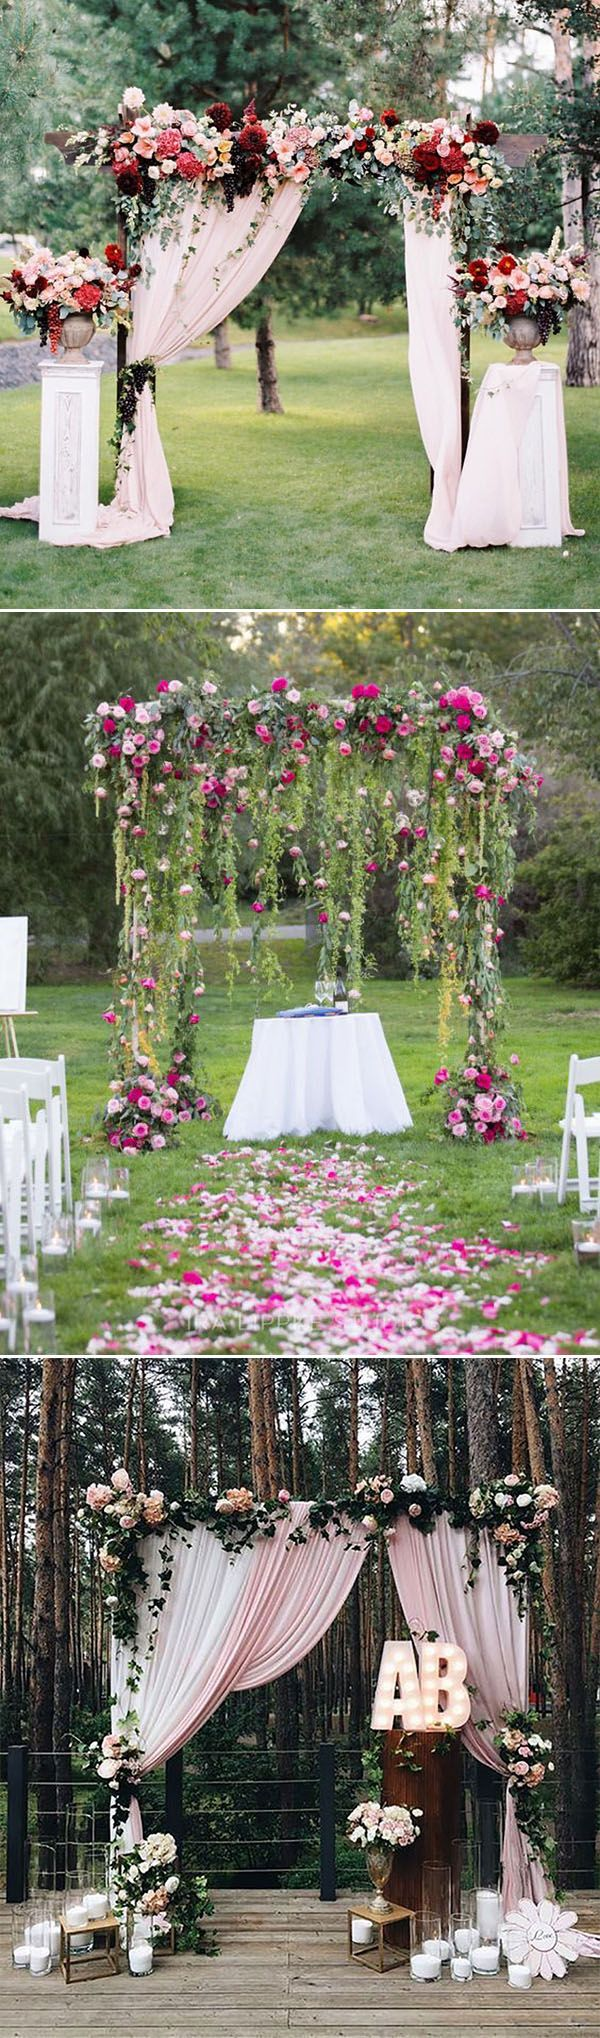 25 best ideas about wedding arch decorations on pinterest for Altar decoration wedding